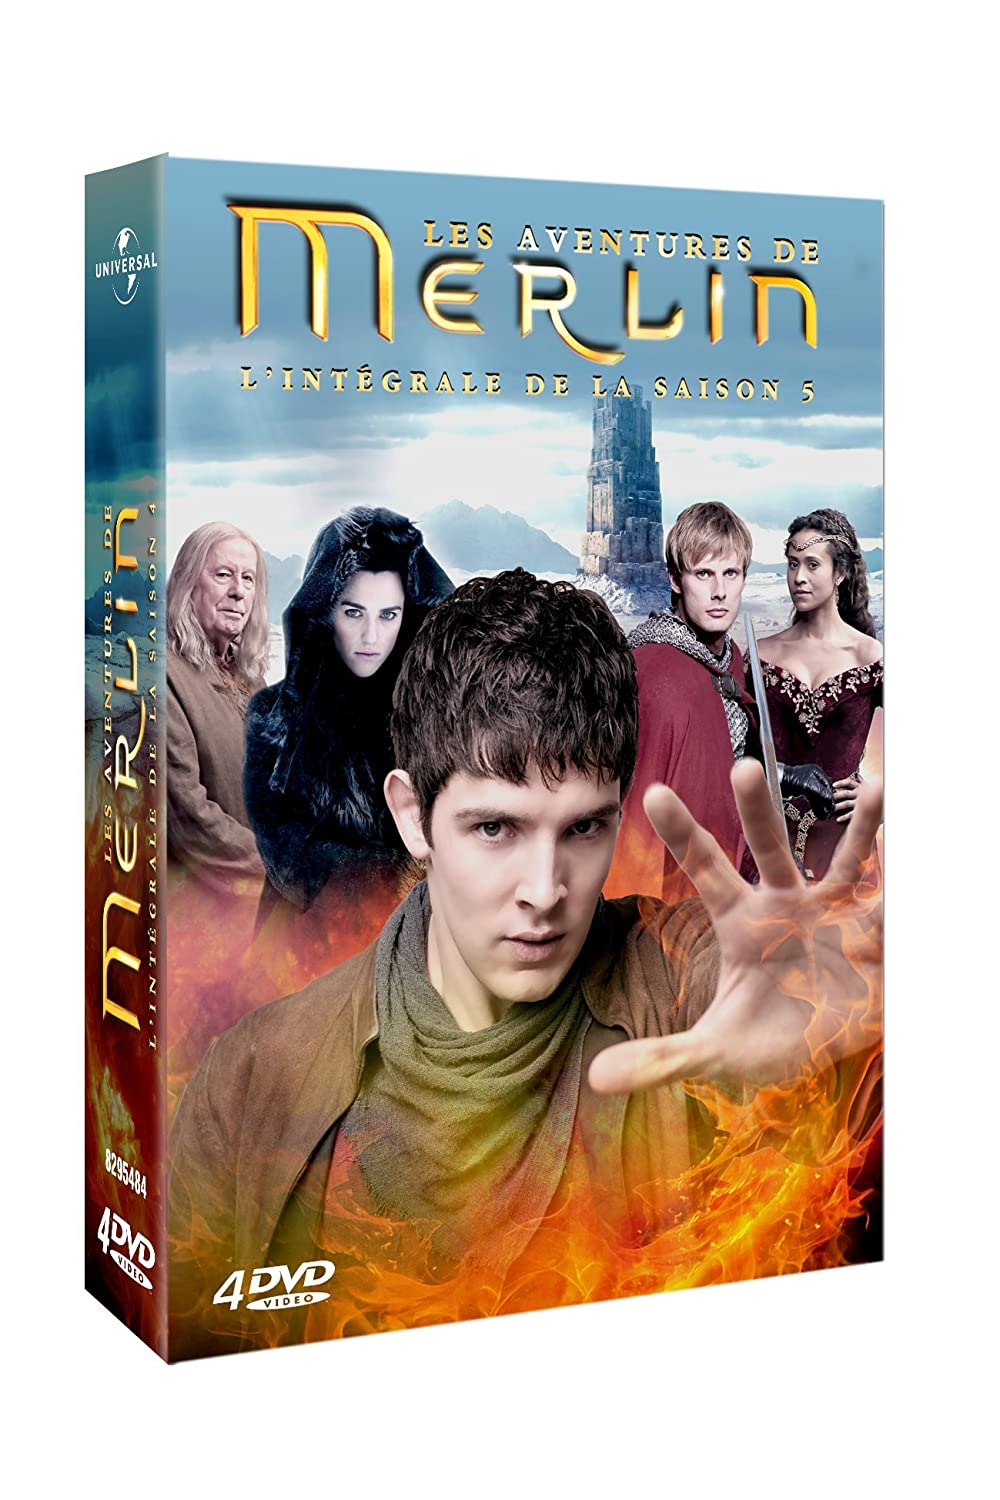 merlin saison 5 en dvd aujourd hui les accros aux s ries. Black Bedroom Furniture Sets. Home Design Ideas